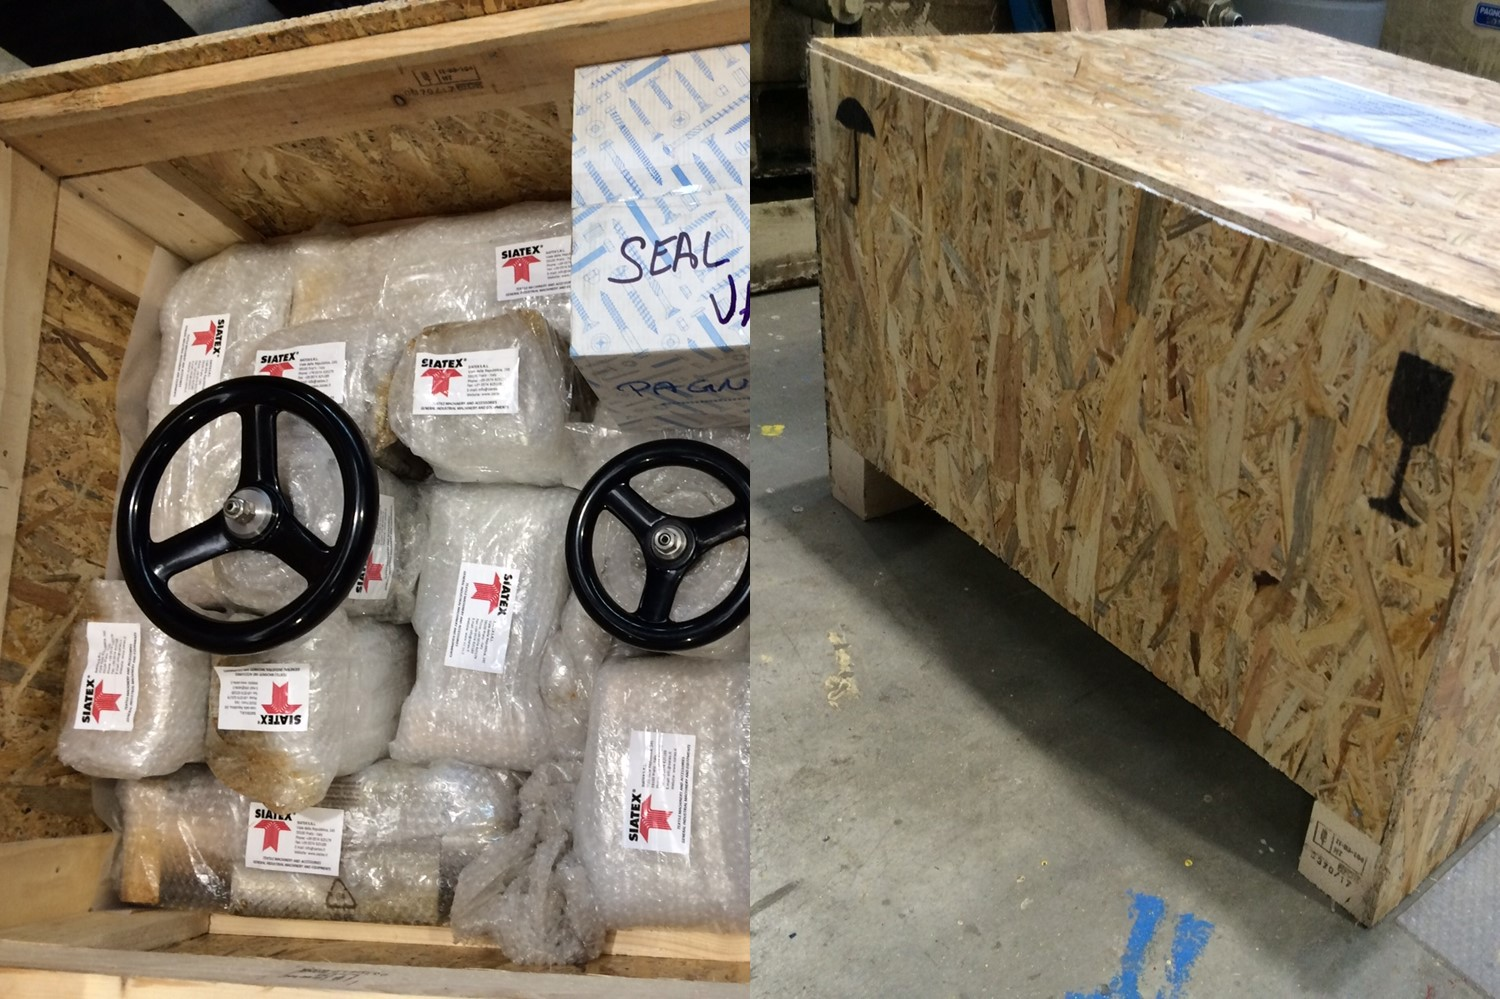 3.shipment wooden box_spare parts for chipwood plant